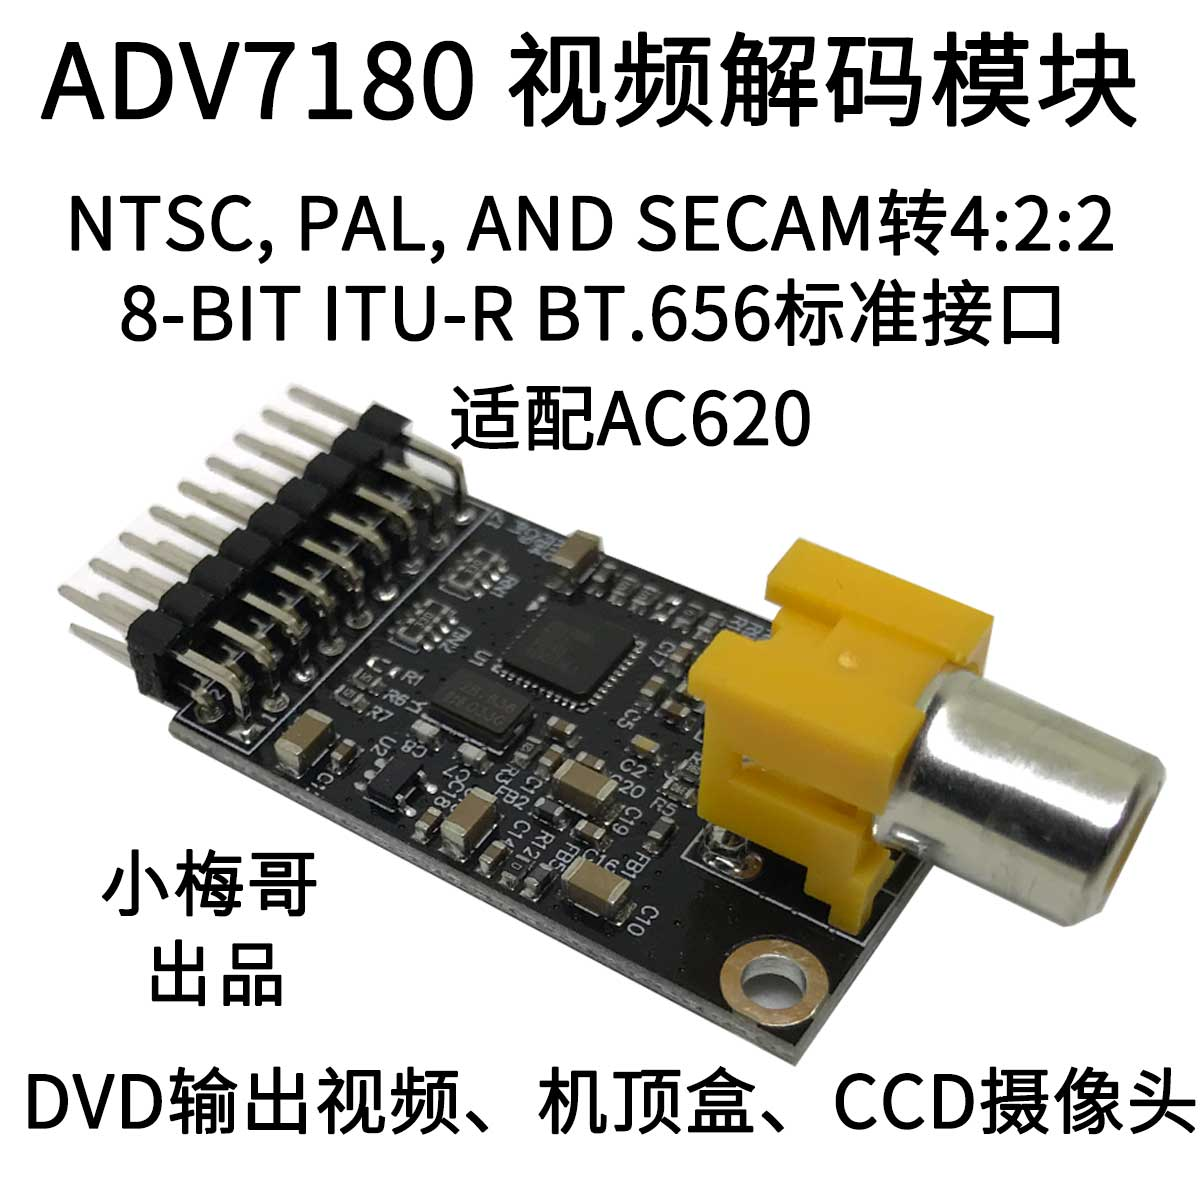 FPGA, ADV7180 Camera CCD / PAL Decoding Module, Same Interface as OV7670 image